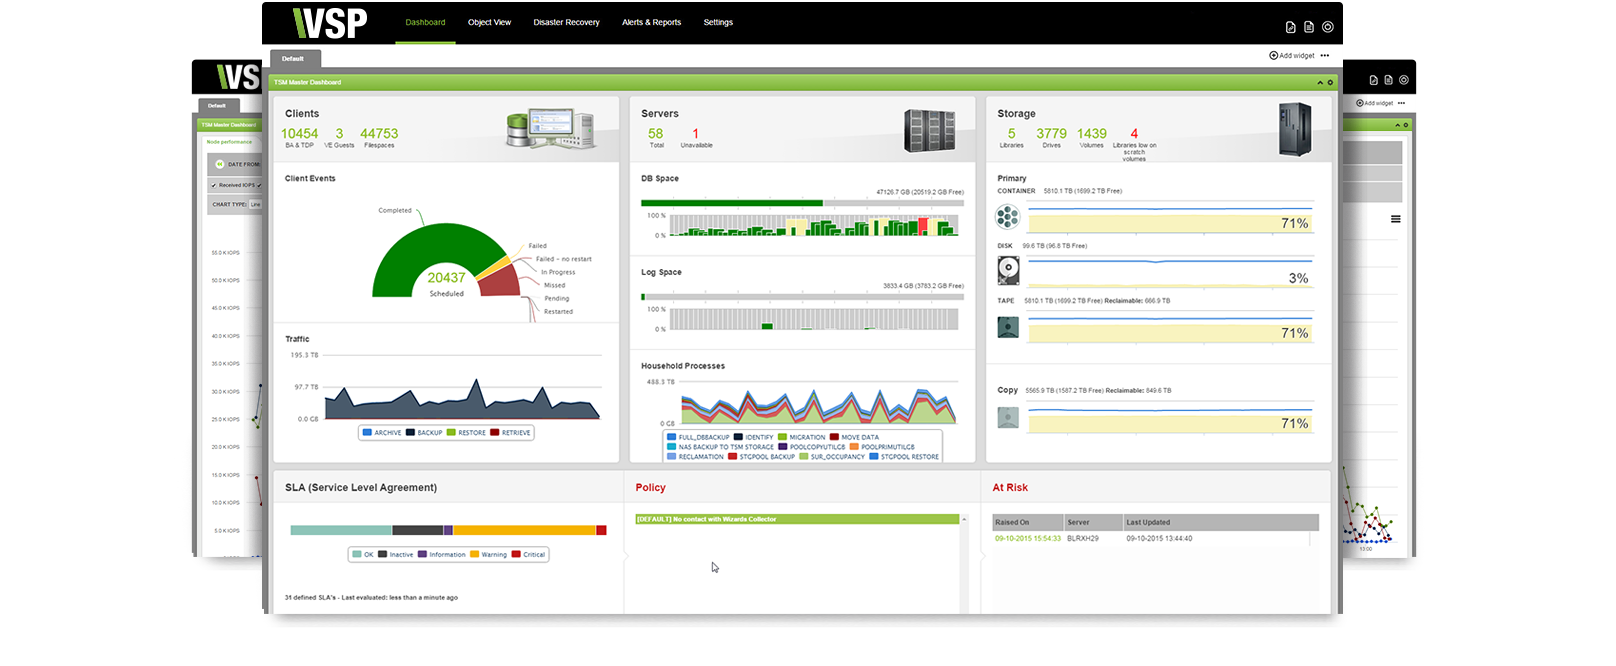 Award-winning Monitoring Software WSP